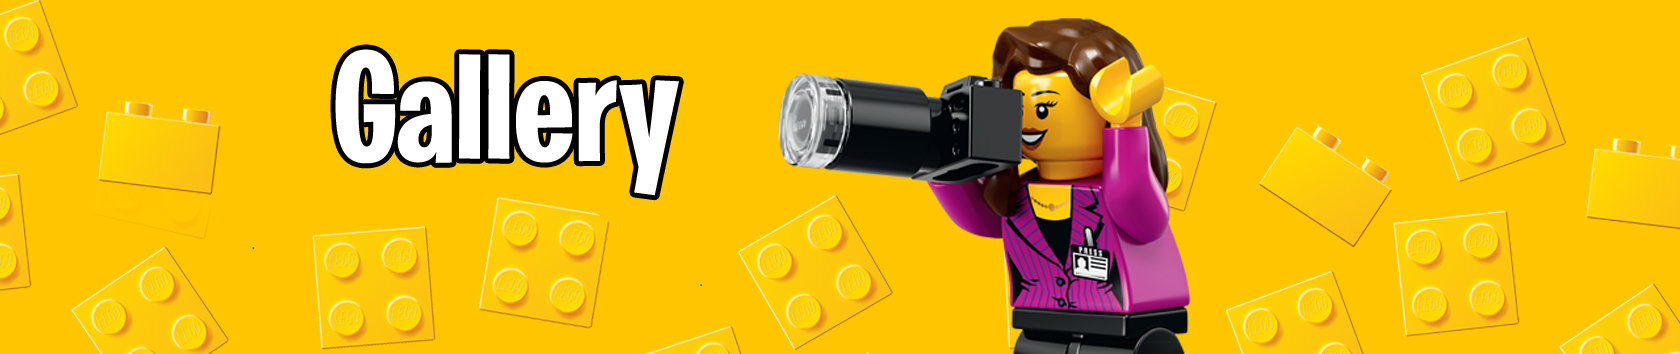 Come and Play with LEGO bricks